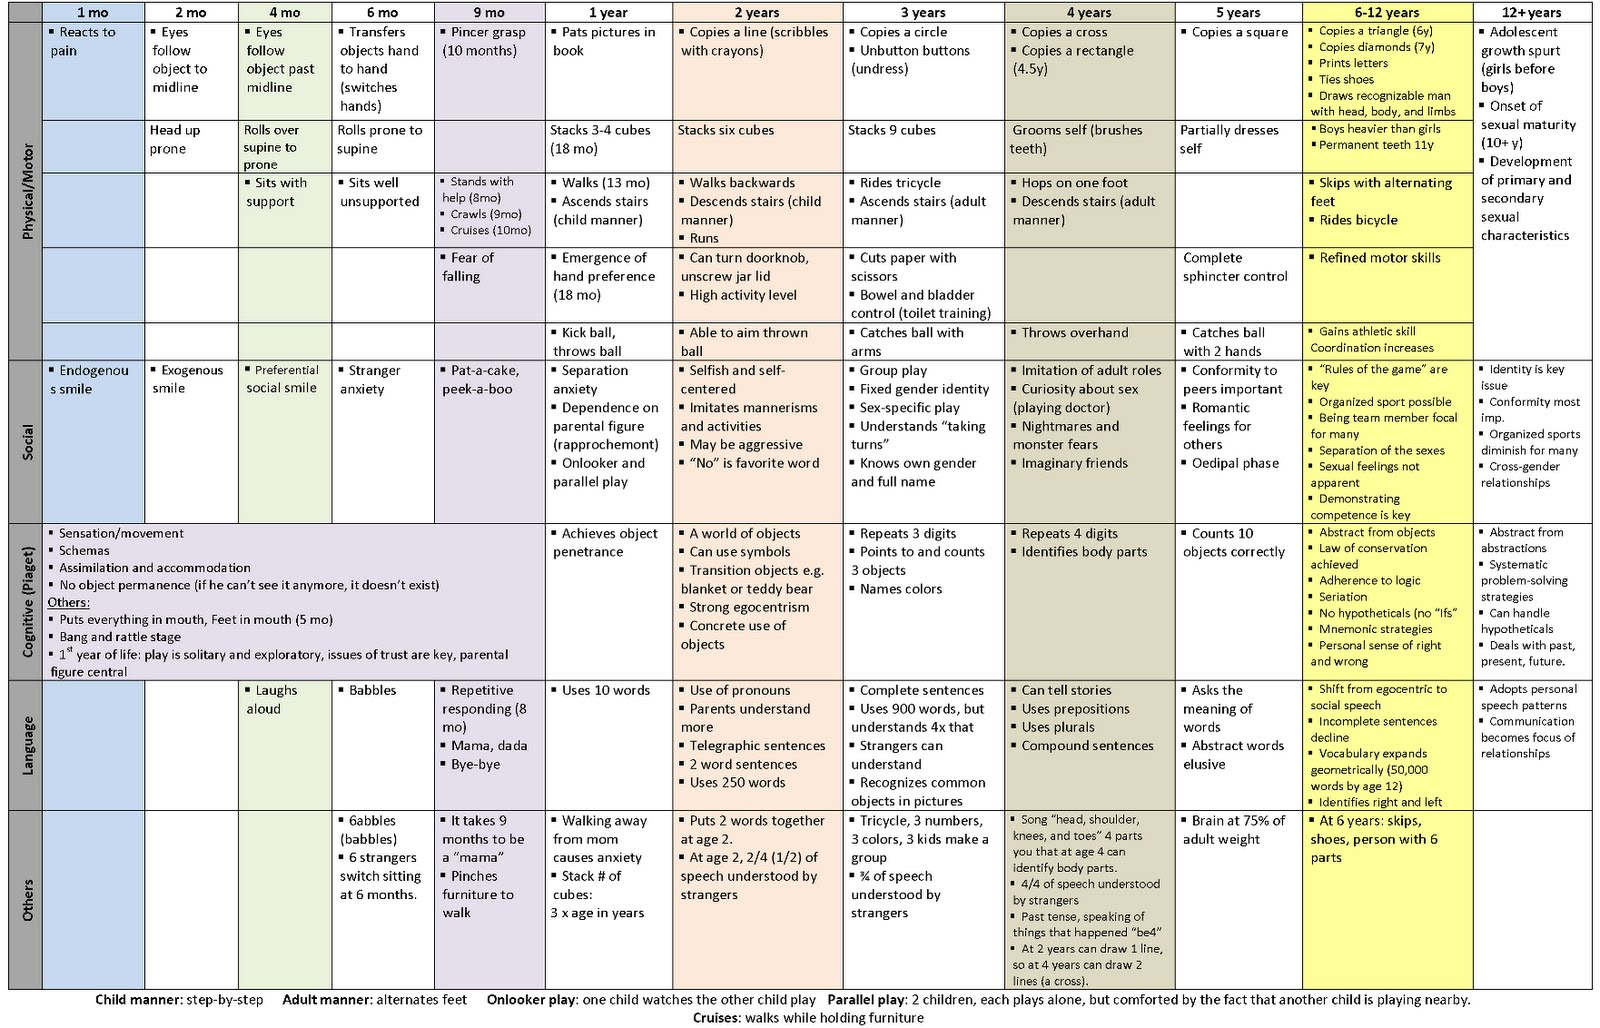 developmental chart of a baby during year: Images baby growth stage chart child developmental stages chart